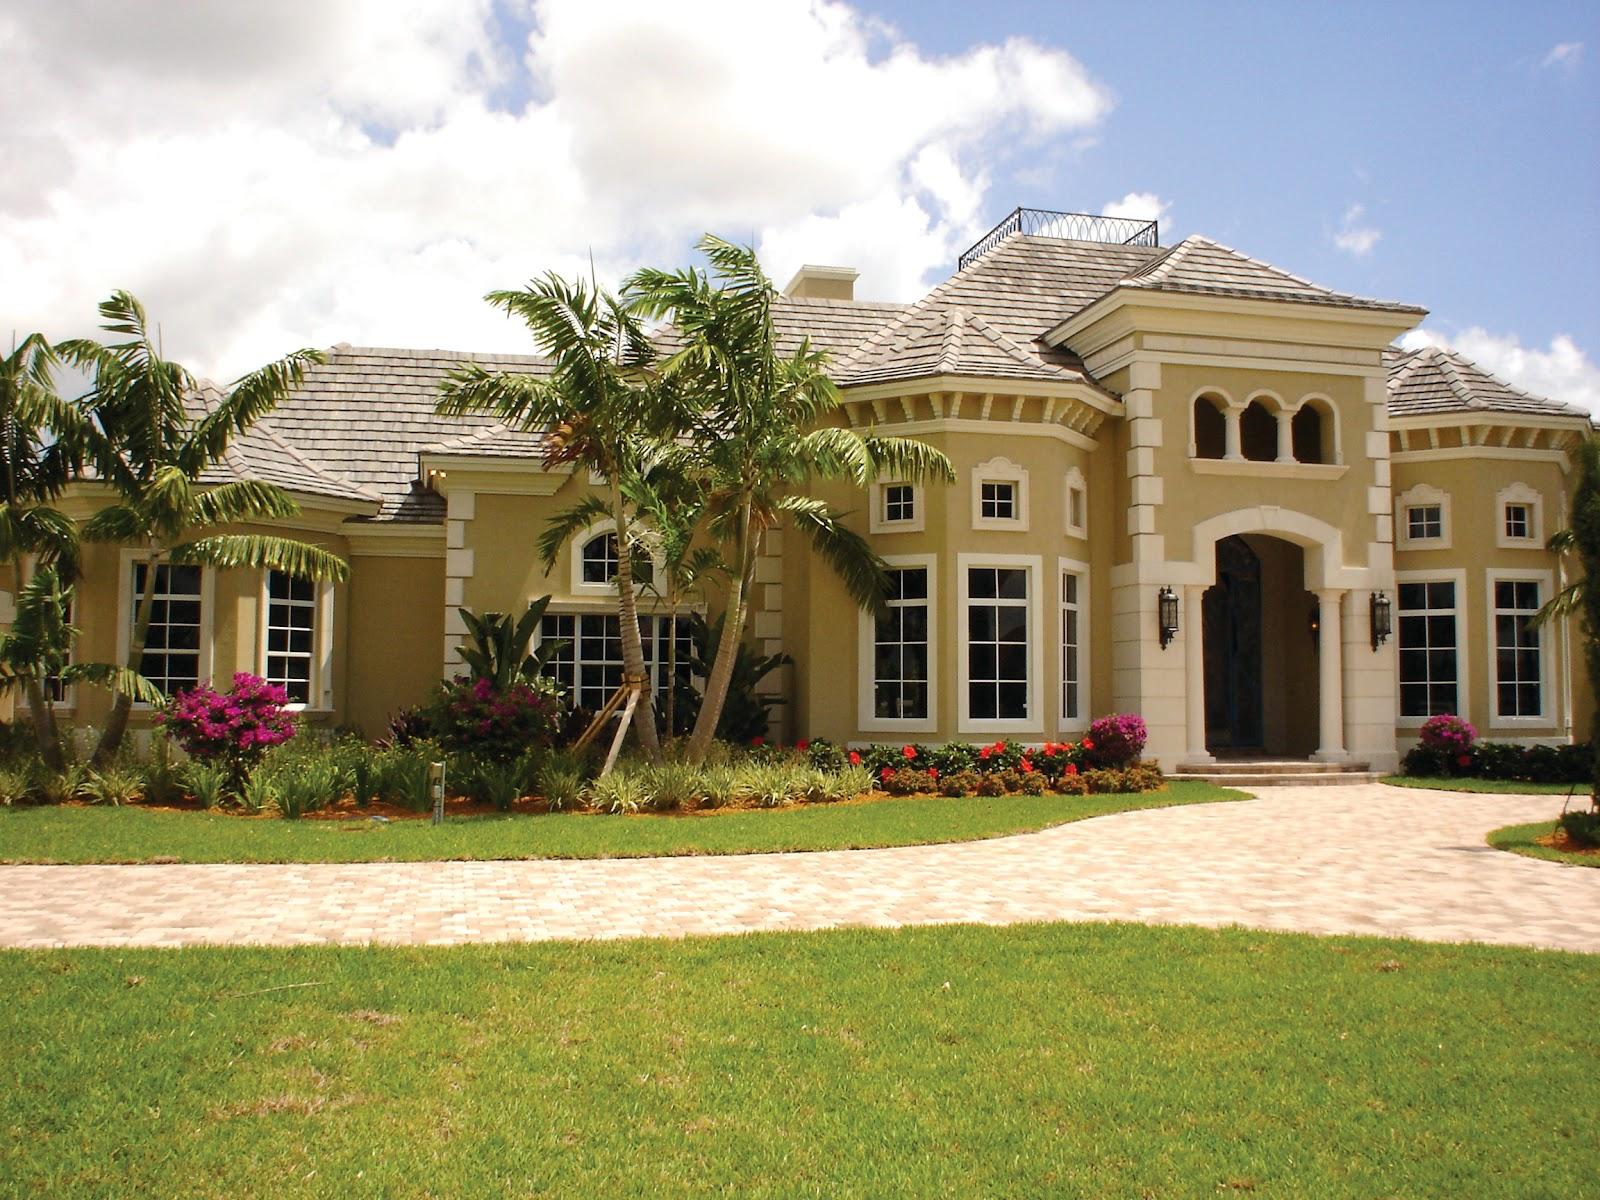 Custom home plans in florida house design plans for Custom home plans florida